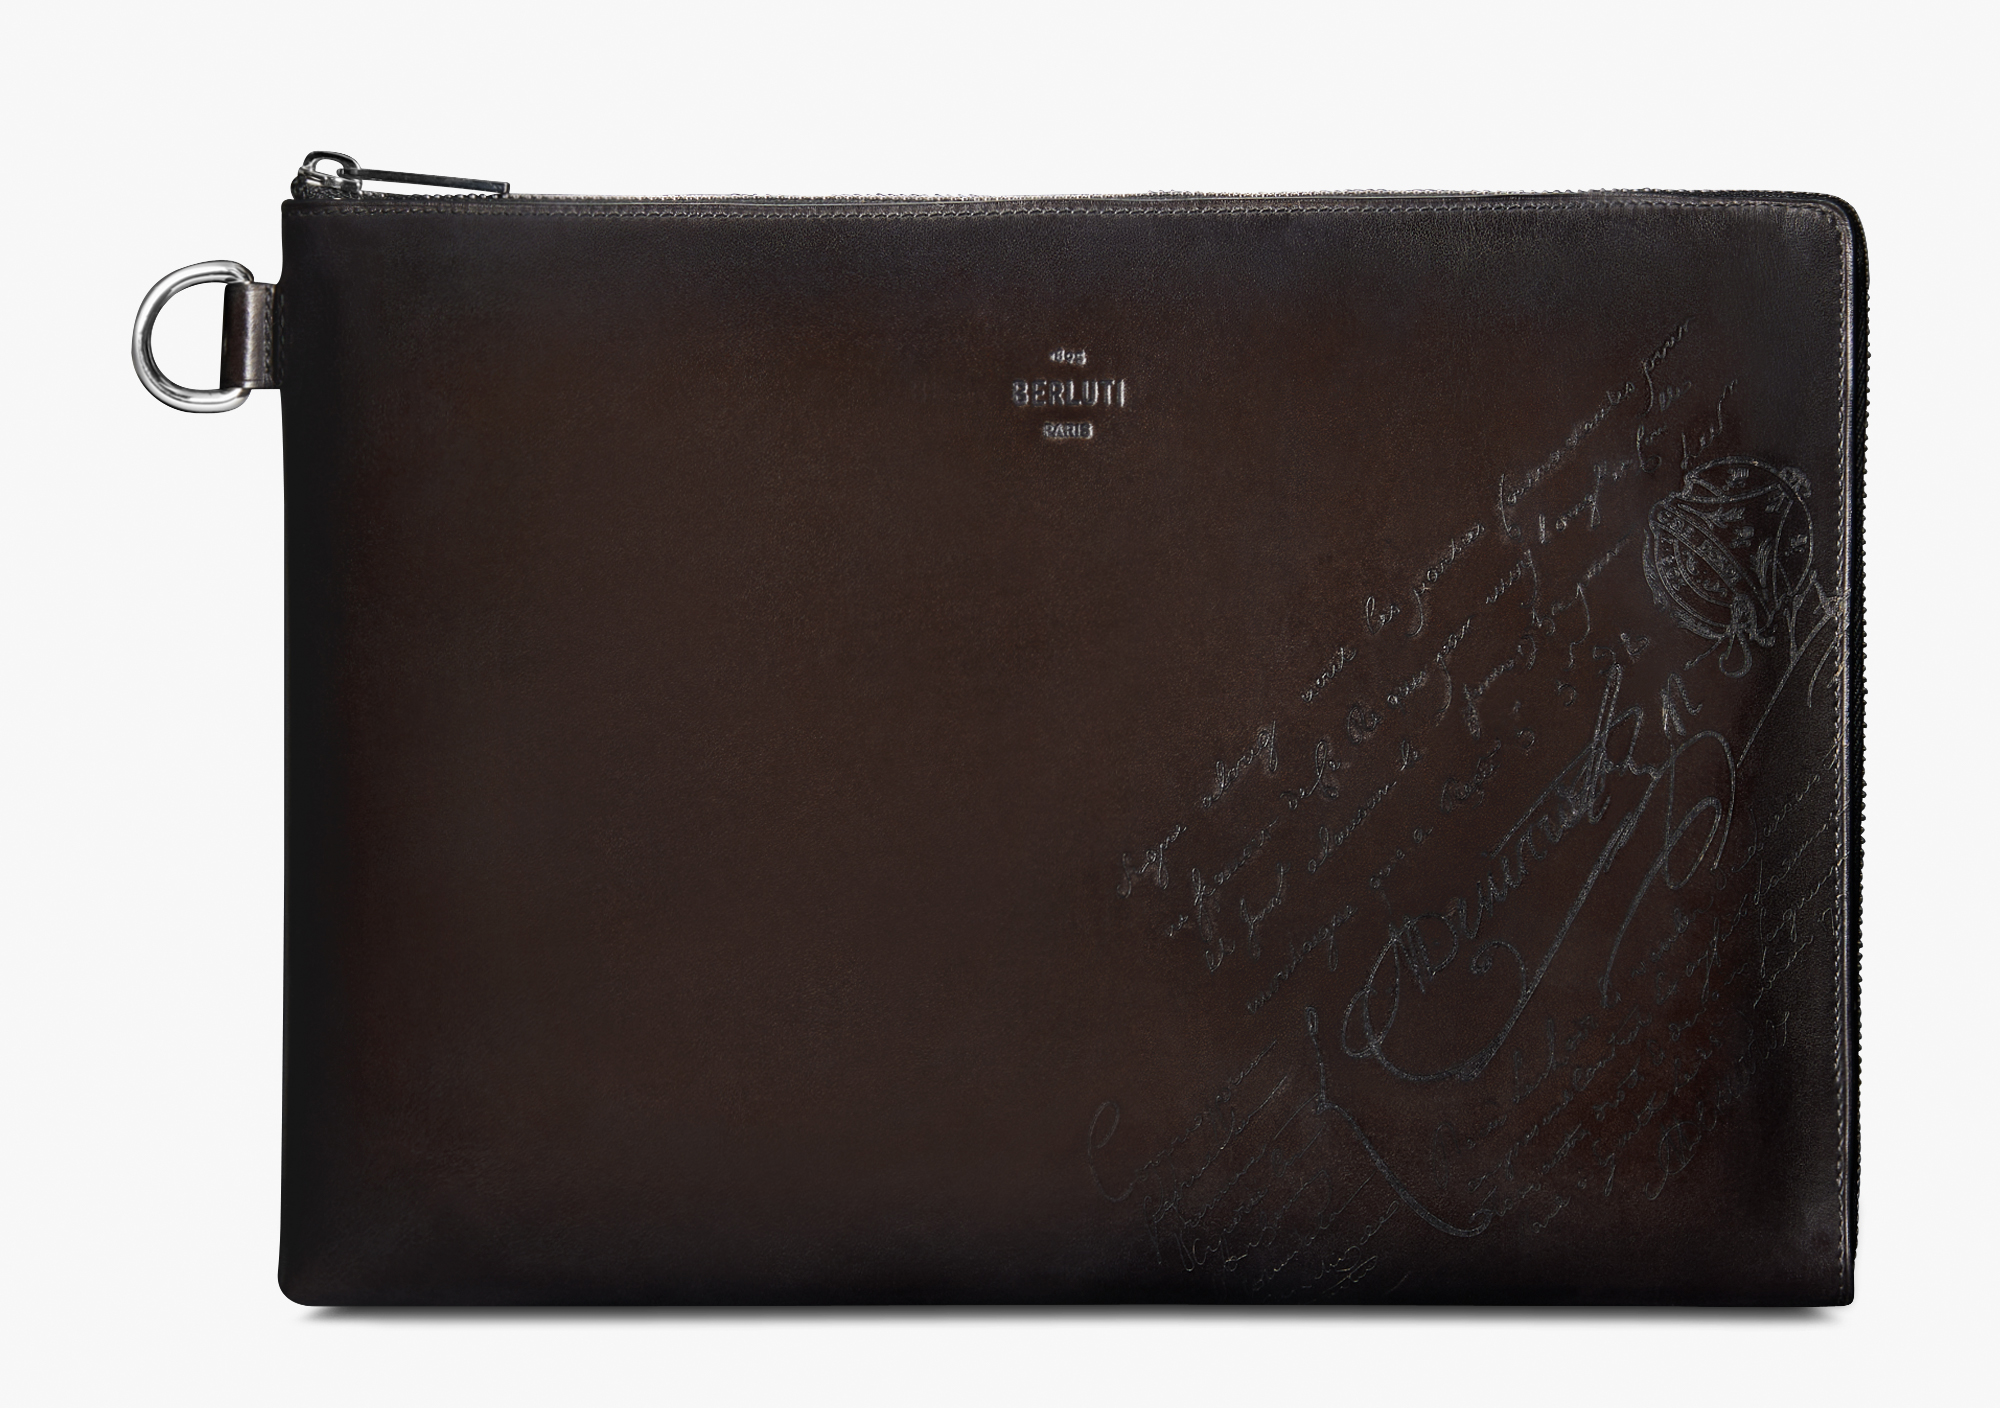 Nino GM Scritto Leather Clutch, ICE BLACK, hi-res